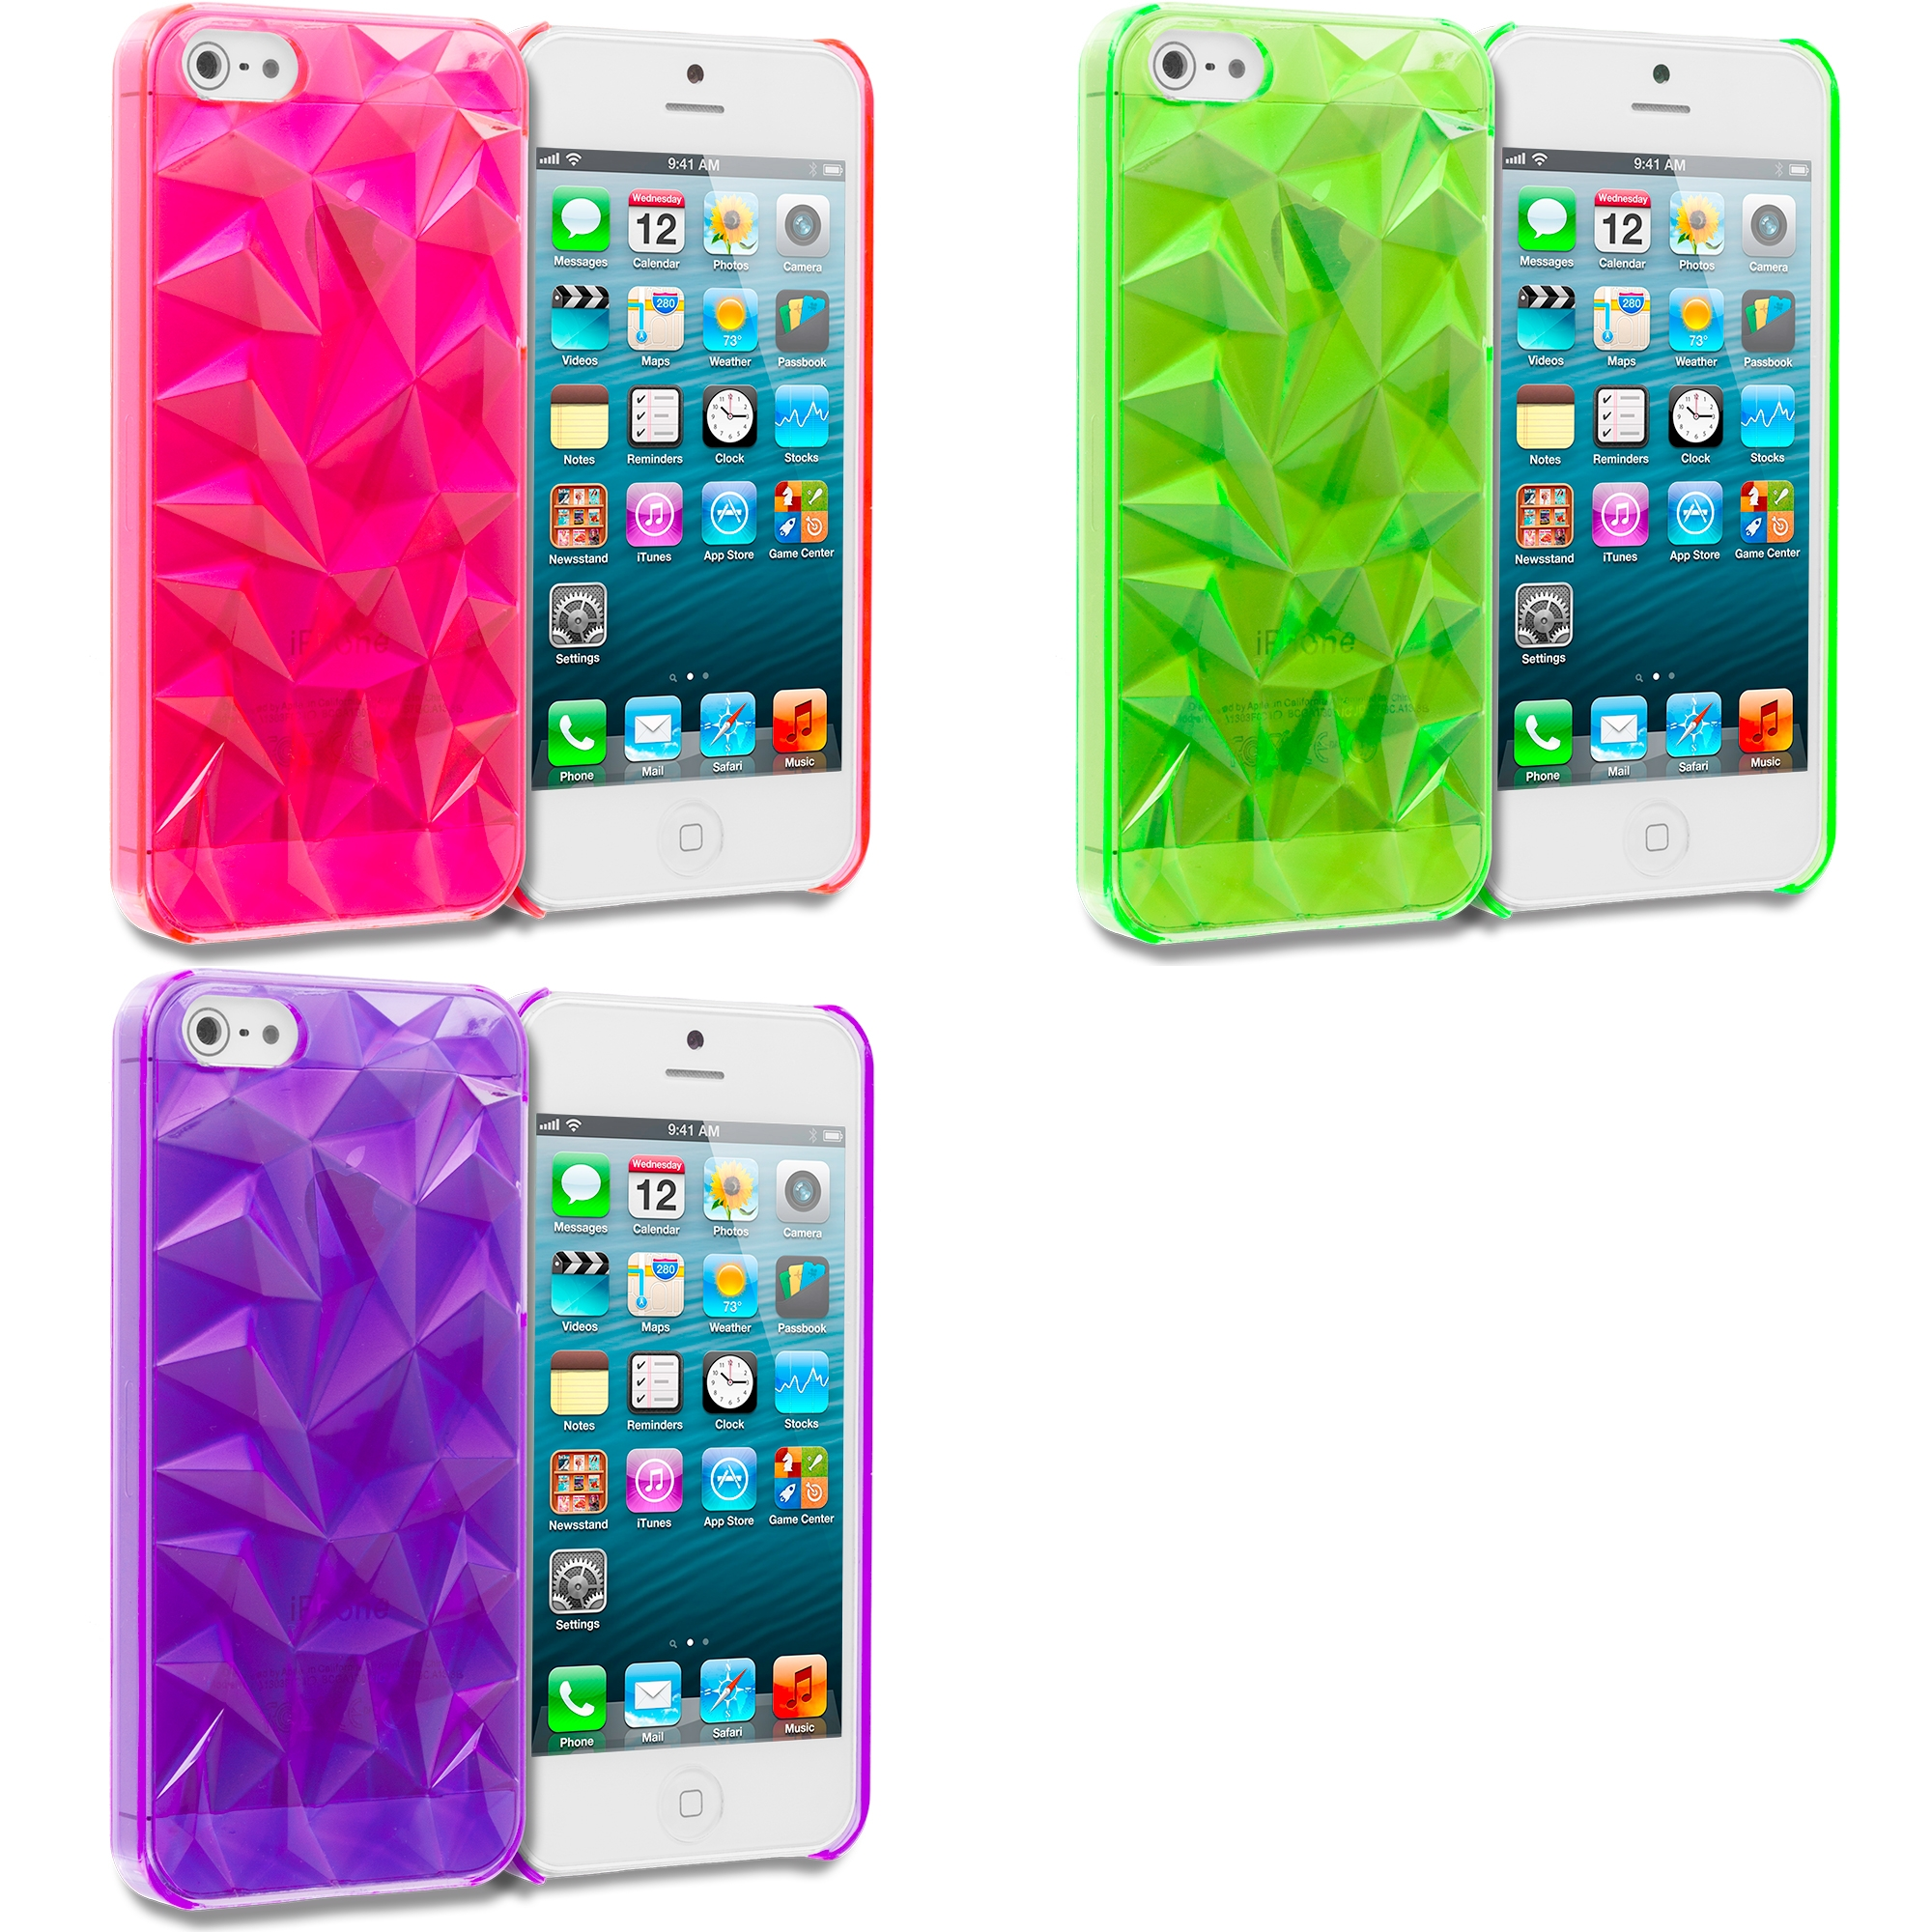 Apple iPhone 5/5S/SE Combo Pack : Hot Pink Diamond Crystal Hard Back Cover Case